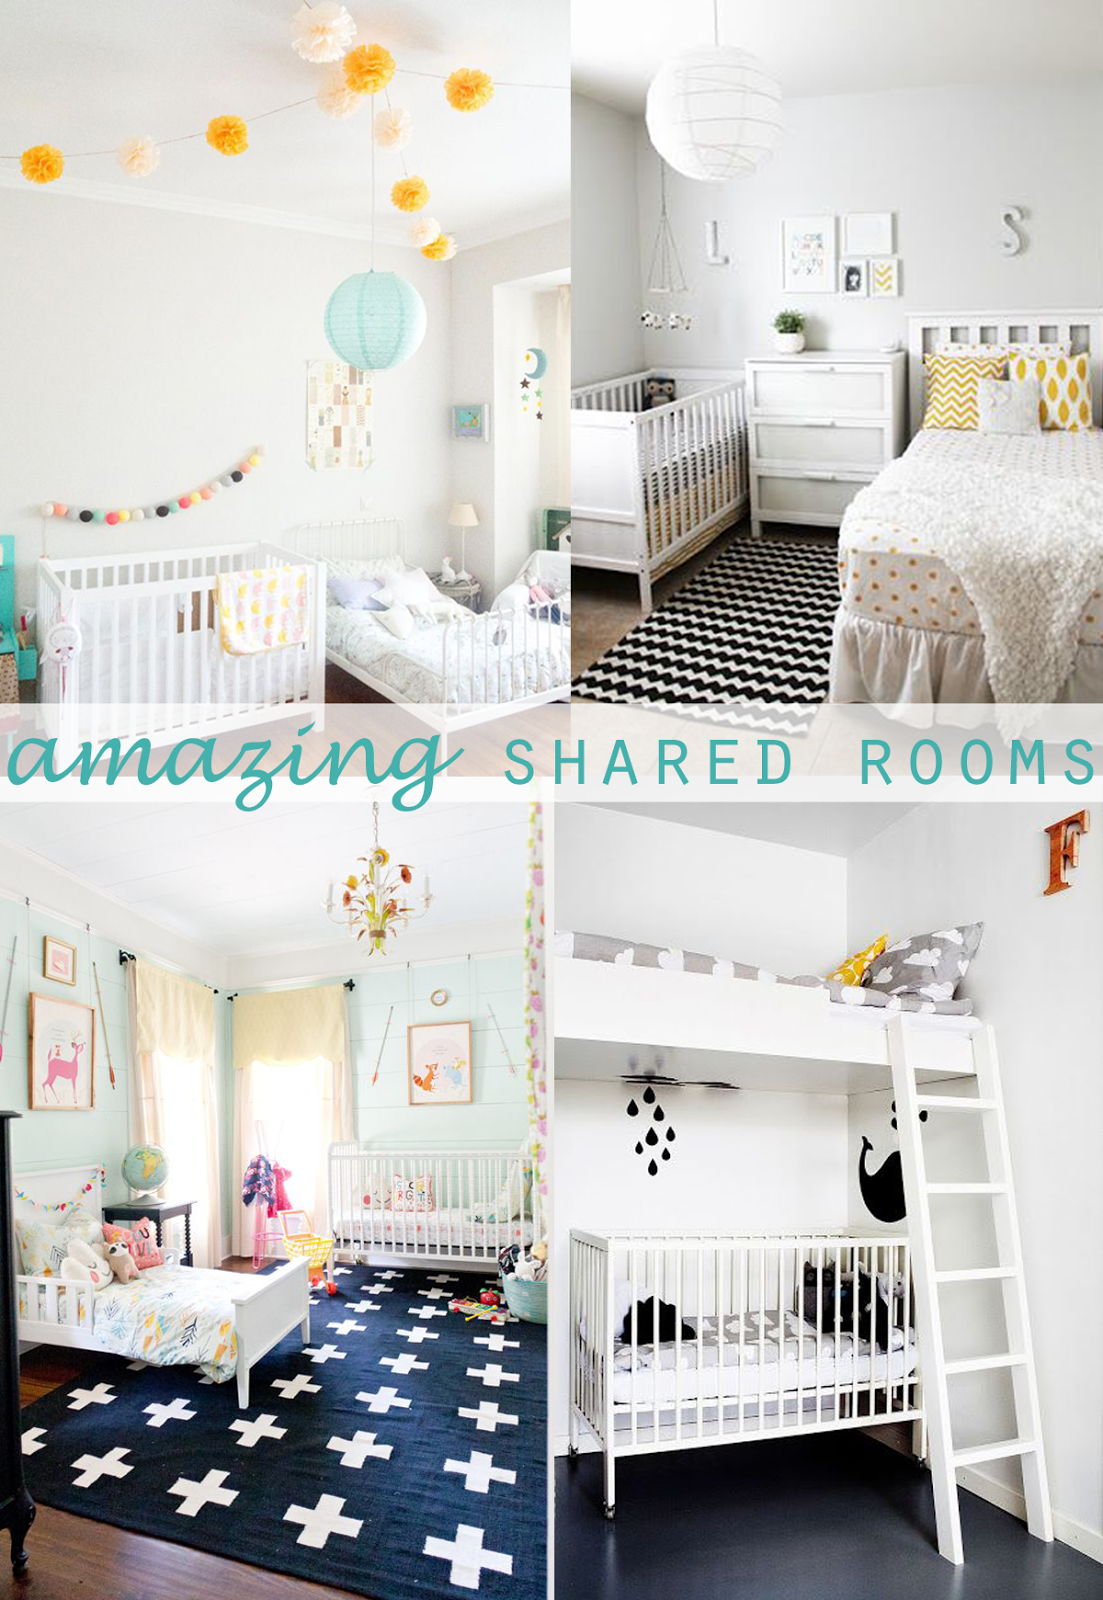 Shared Kids Rooms Making A Multiple Bed Layout Work Shared Kids - Shared bedroom ideas for mom and toddler